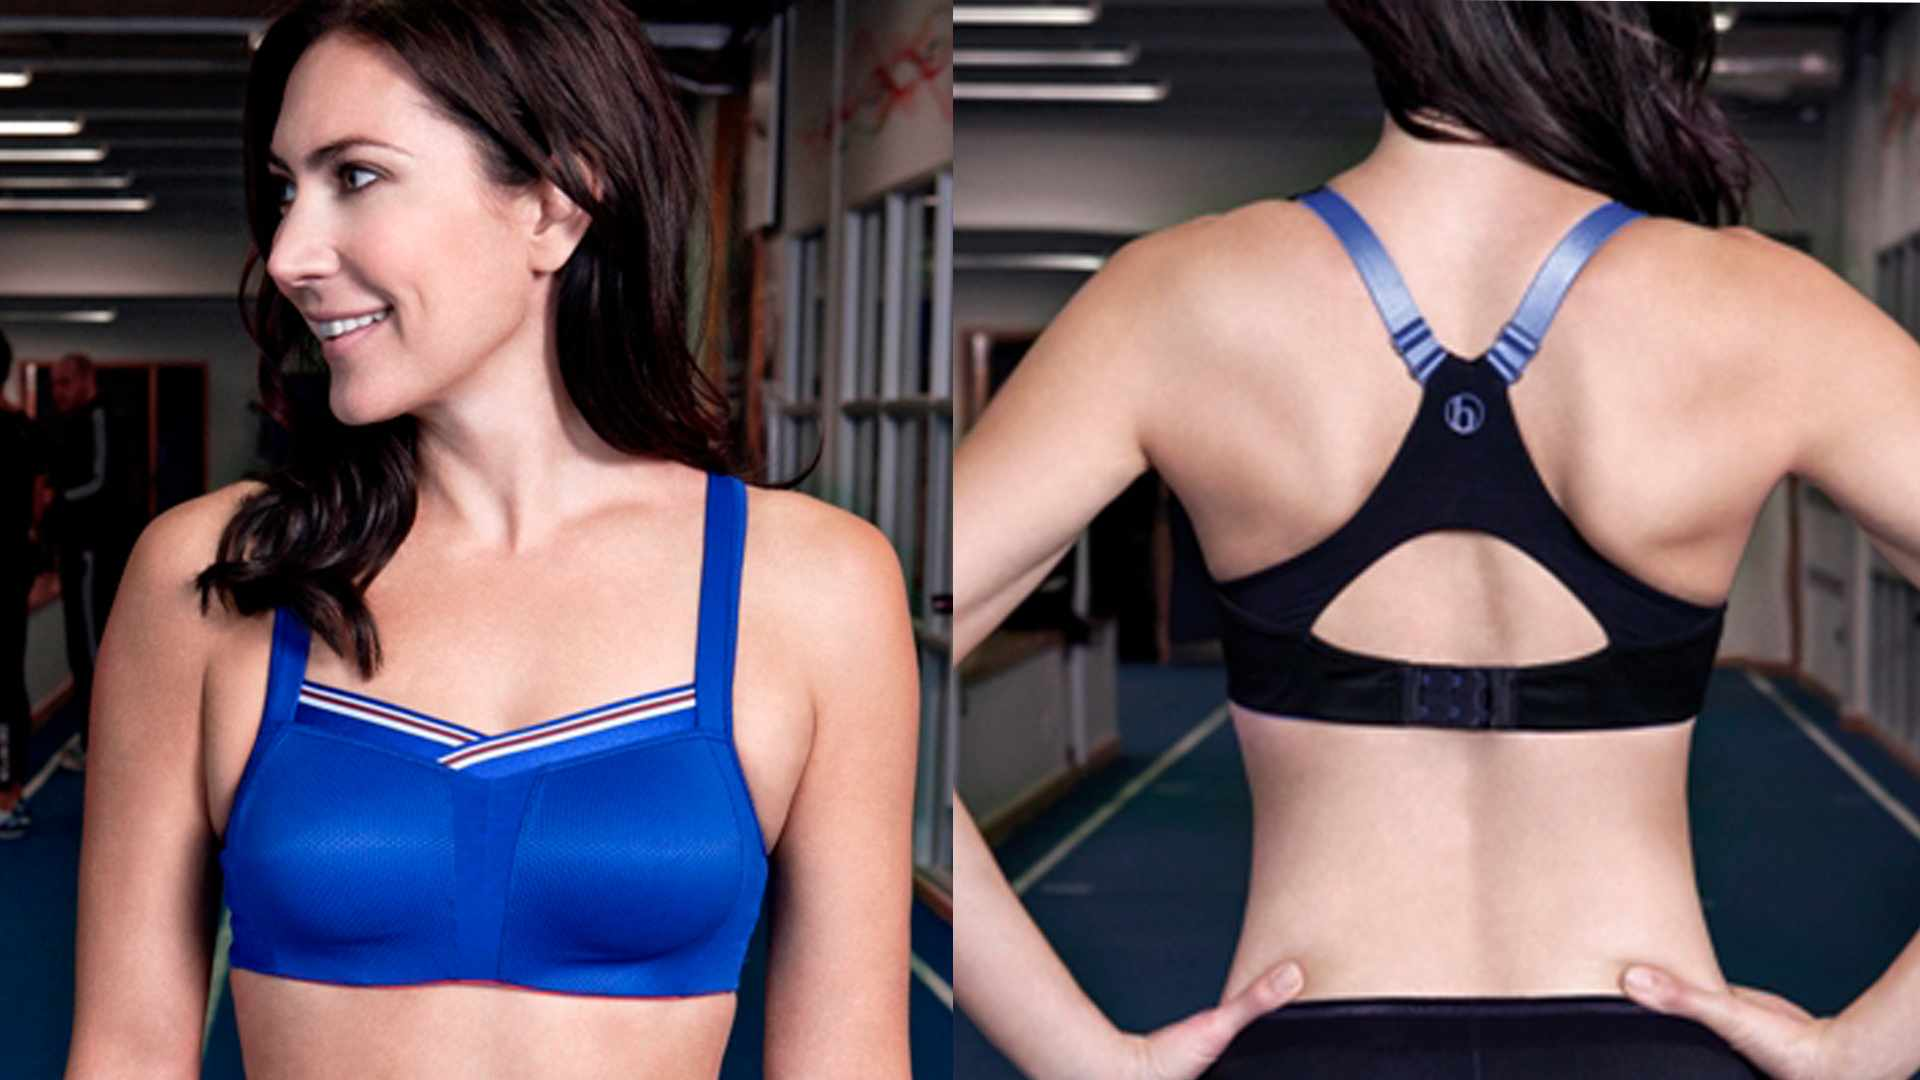 It's worth investing time and money finding a sports bra that fits you well